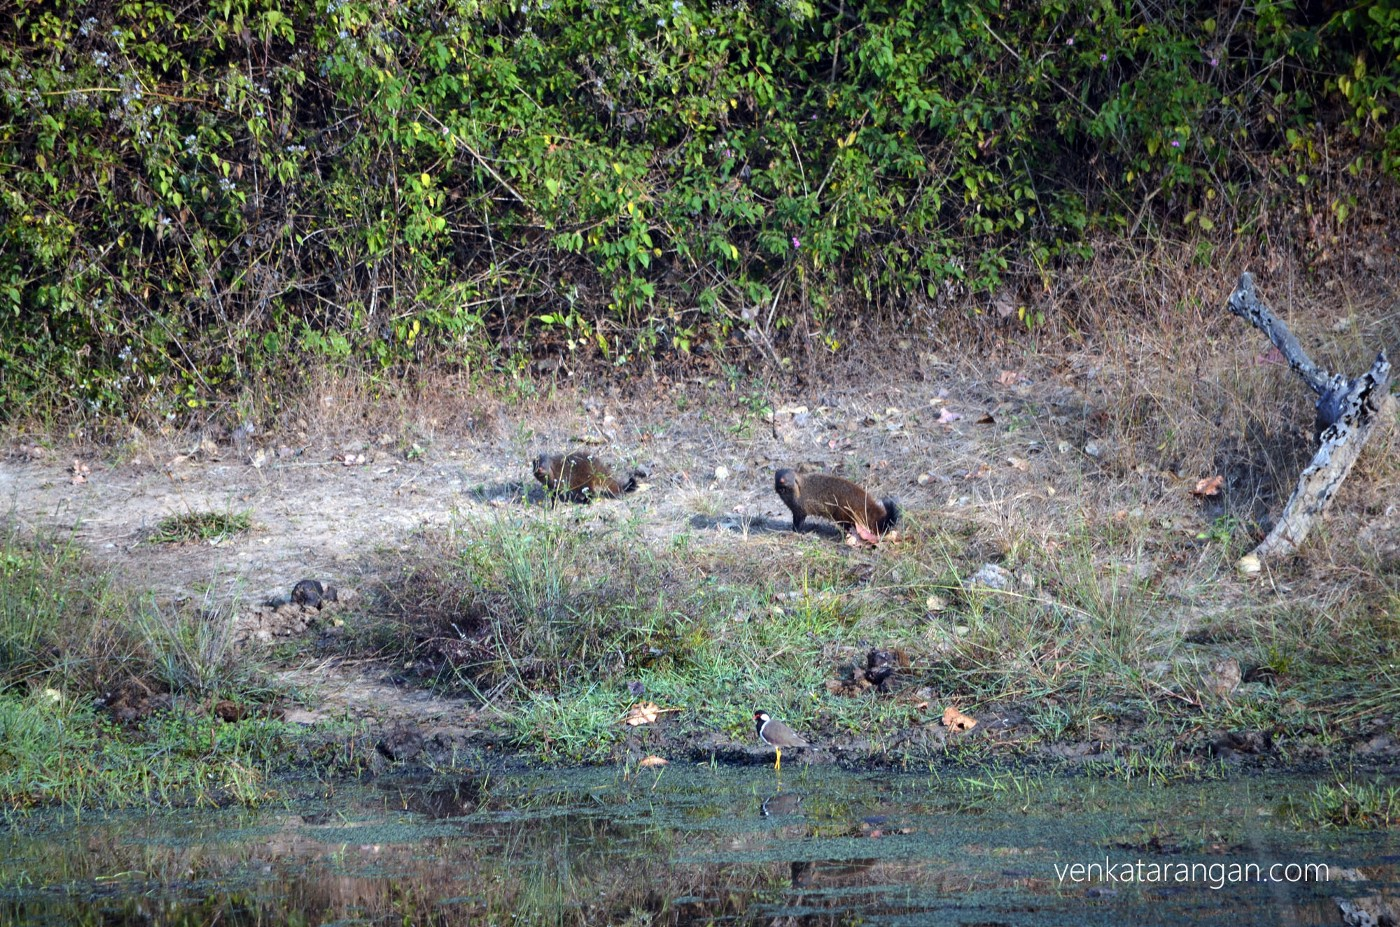 Wild mongoose (in the centre)